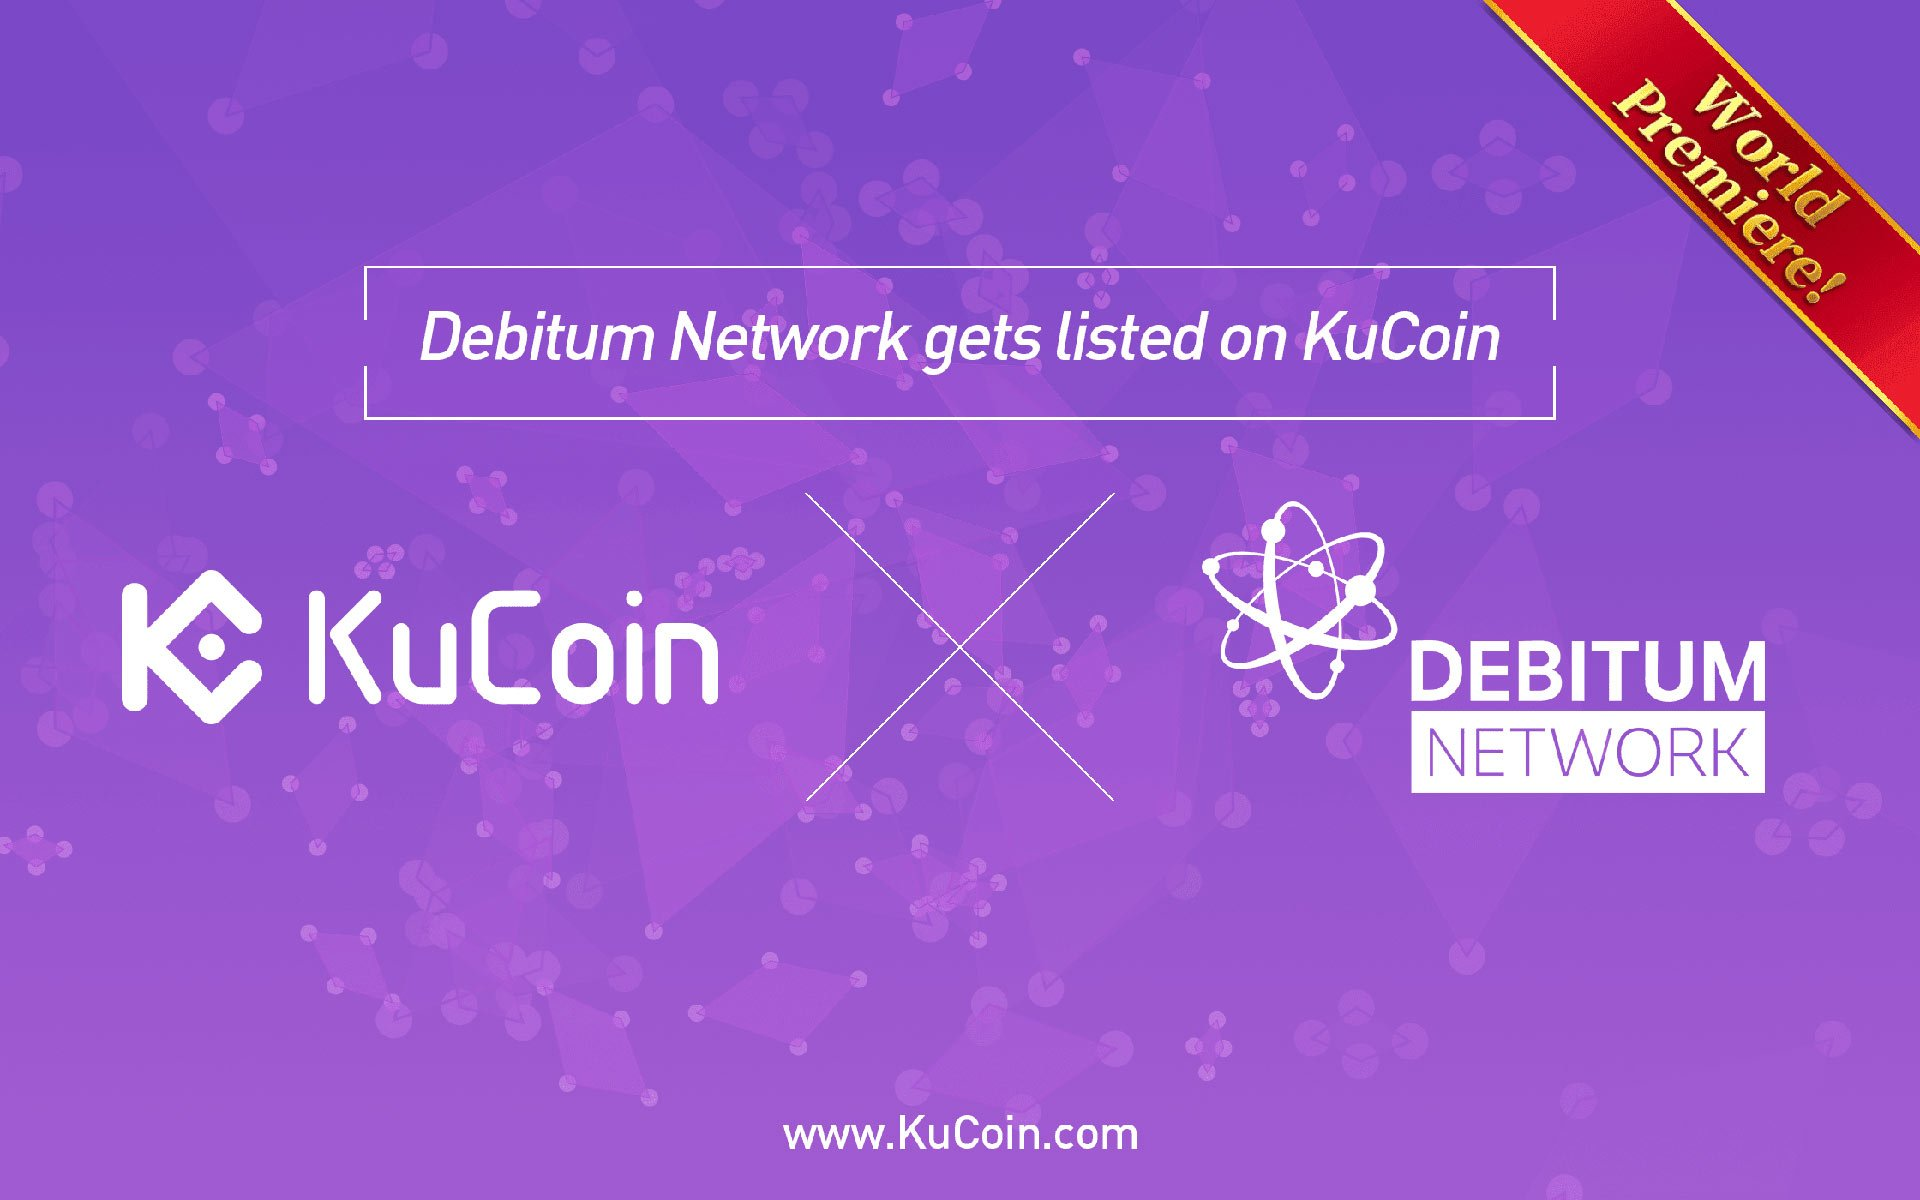 Debitum Network(DEB) Gets Listed on Kucoin! World Premiere!